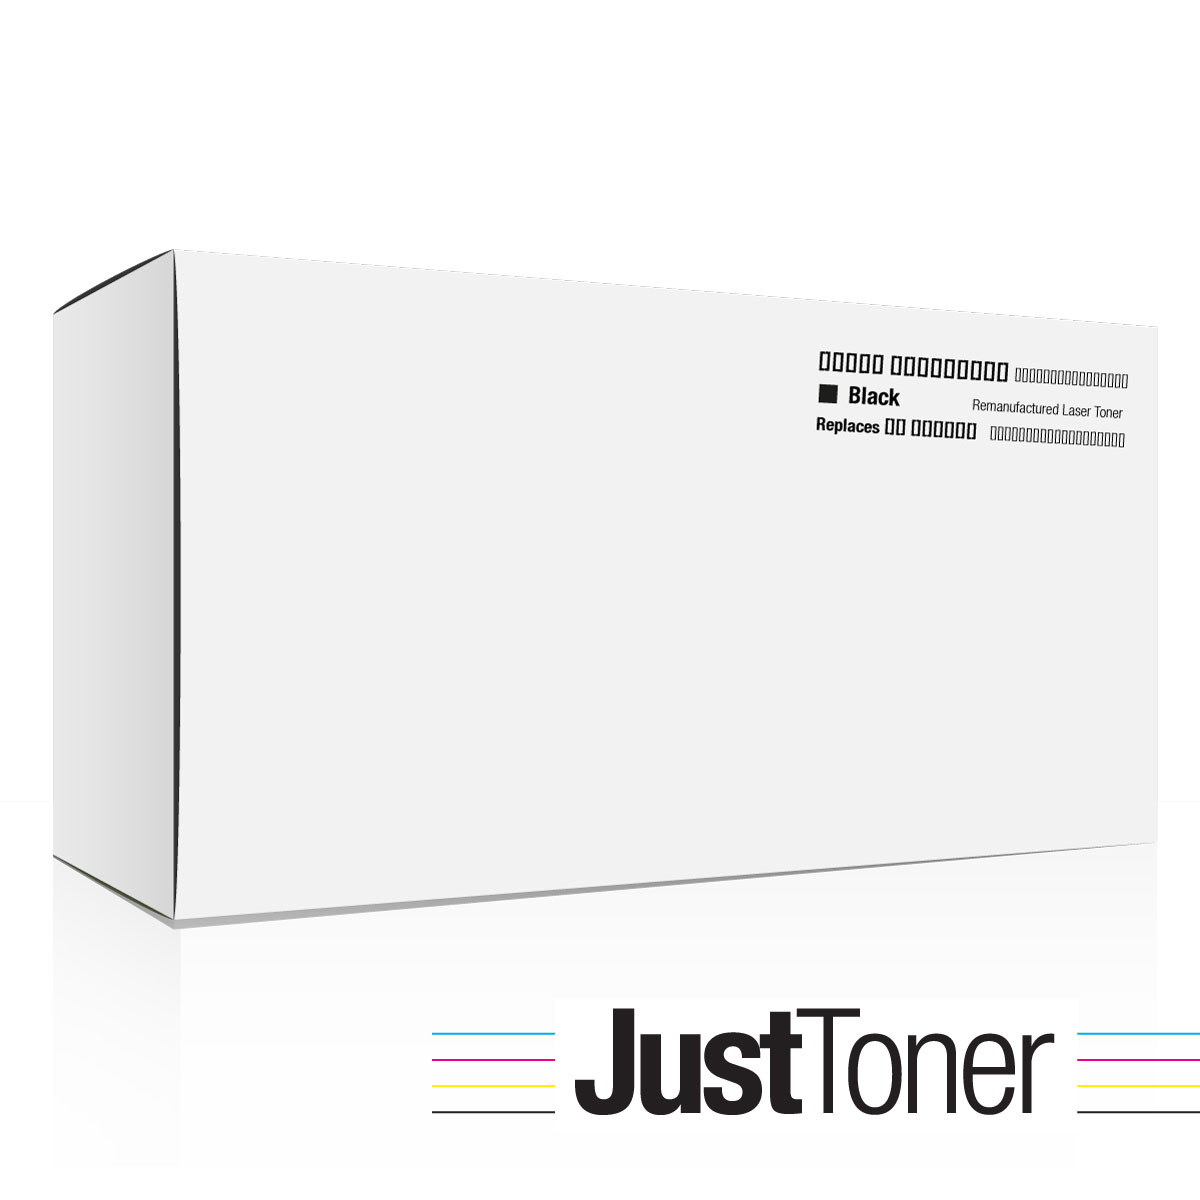 JUST TONER HP Q1339A 39A BLK REMAN TONER